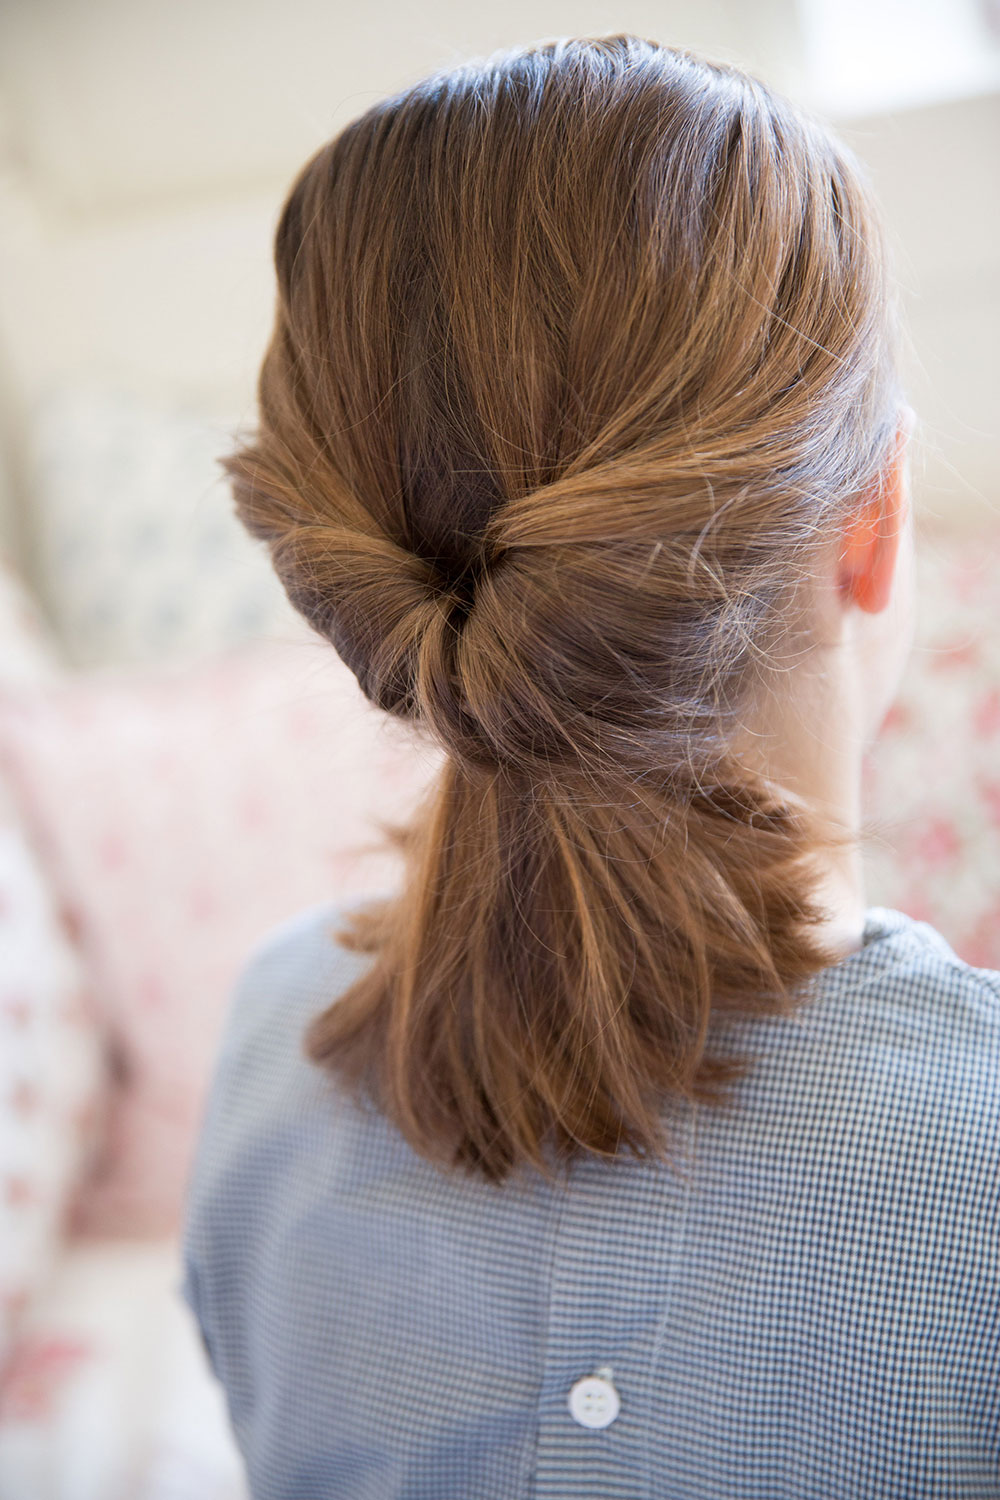 Hair Style The Low Flip Ponytail Babyccino Kids Daily Tips